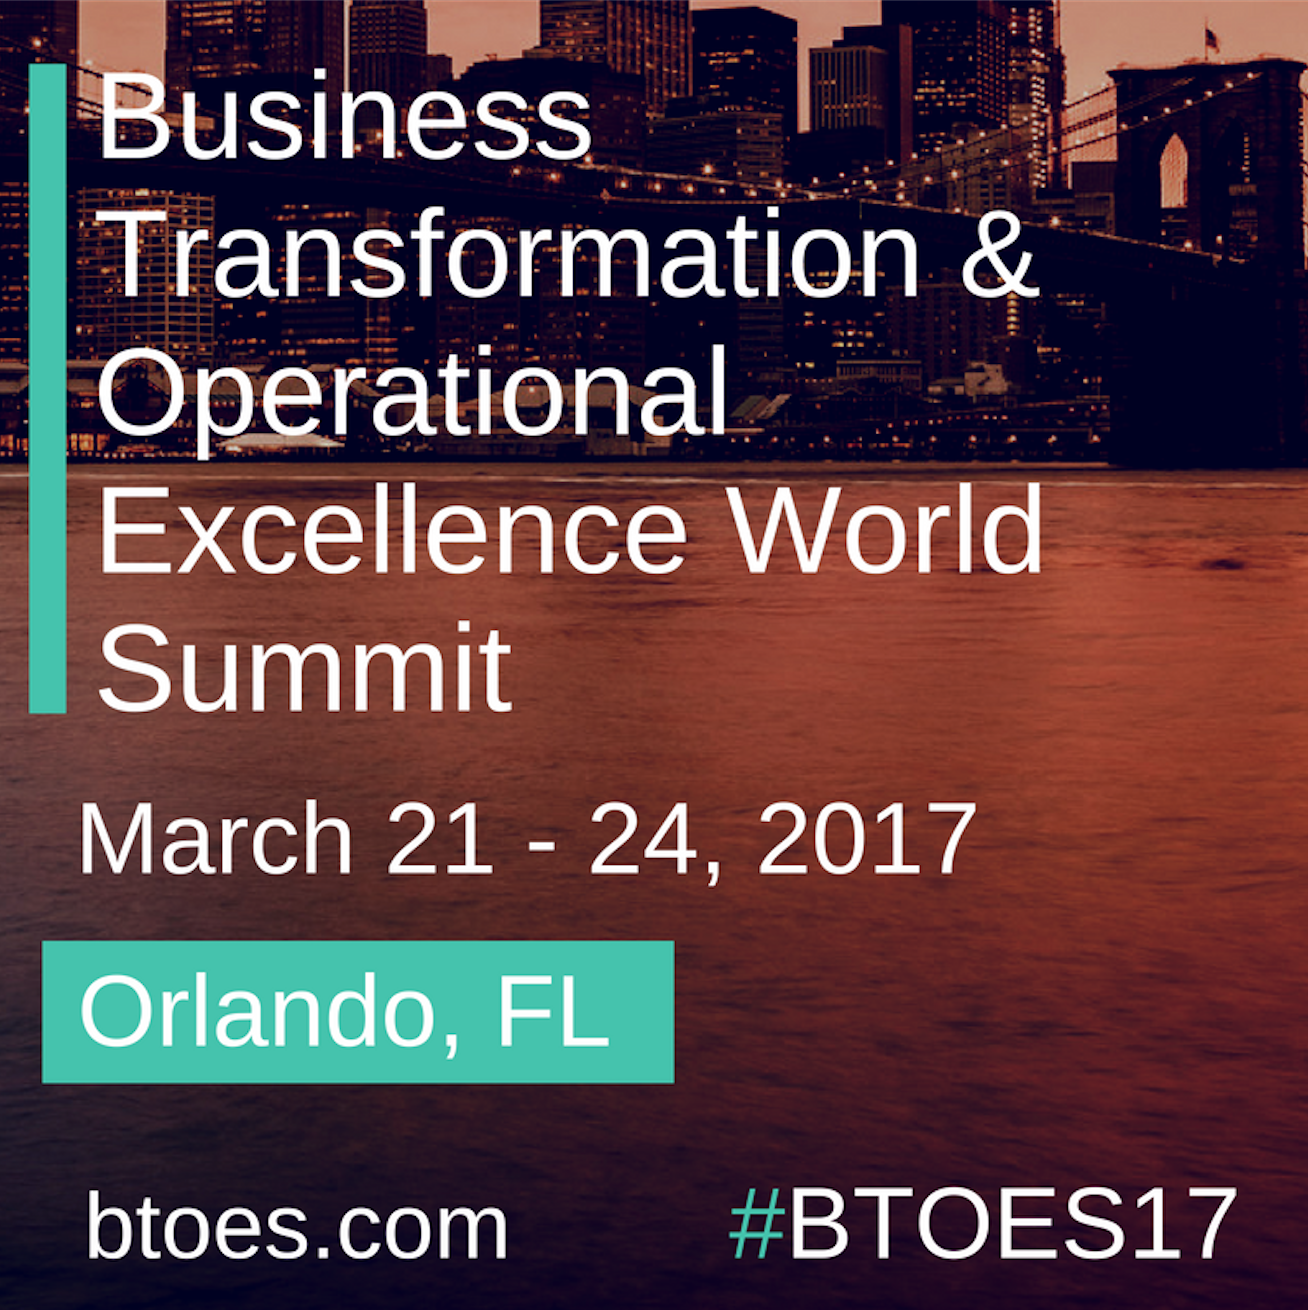 Official Media Partner: Business Transformation & Operational Excellence World Summit